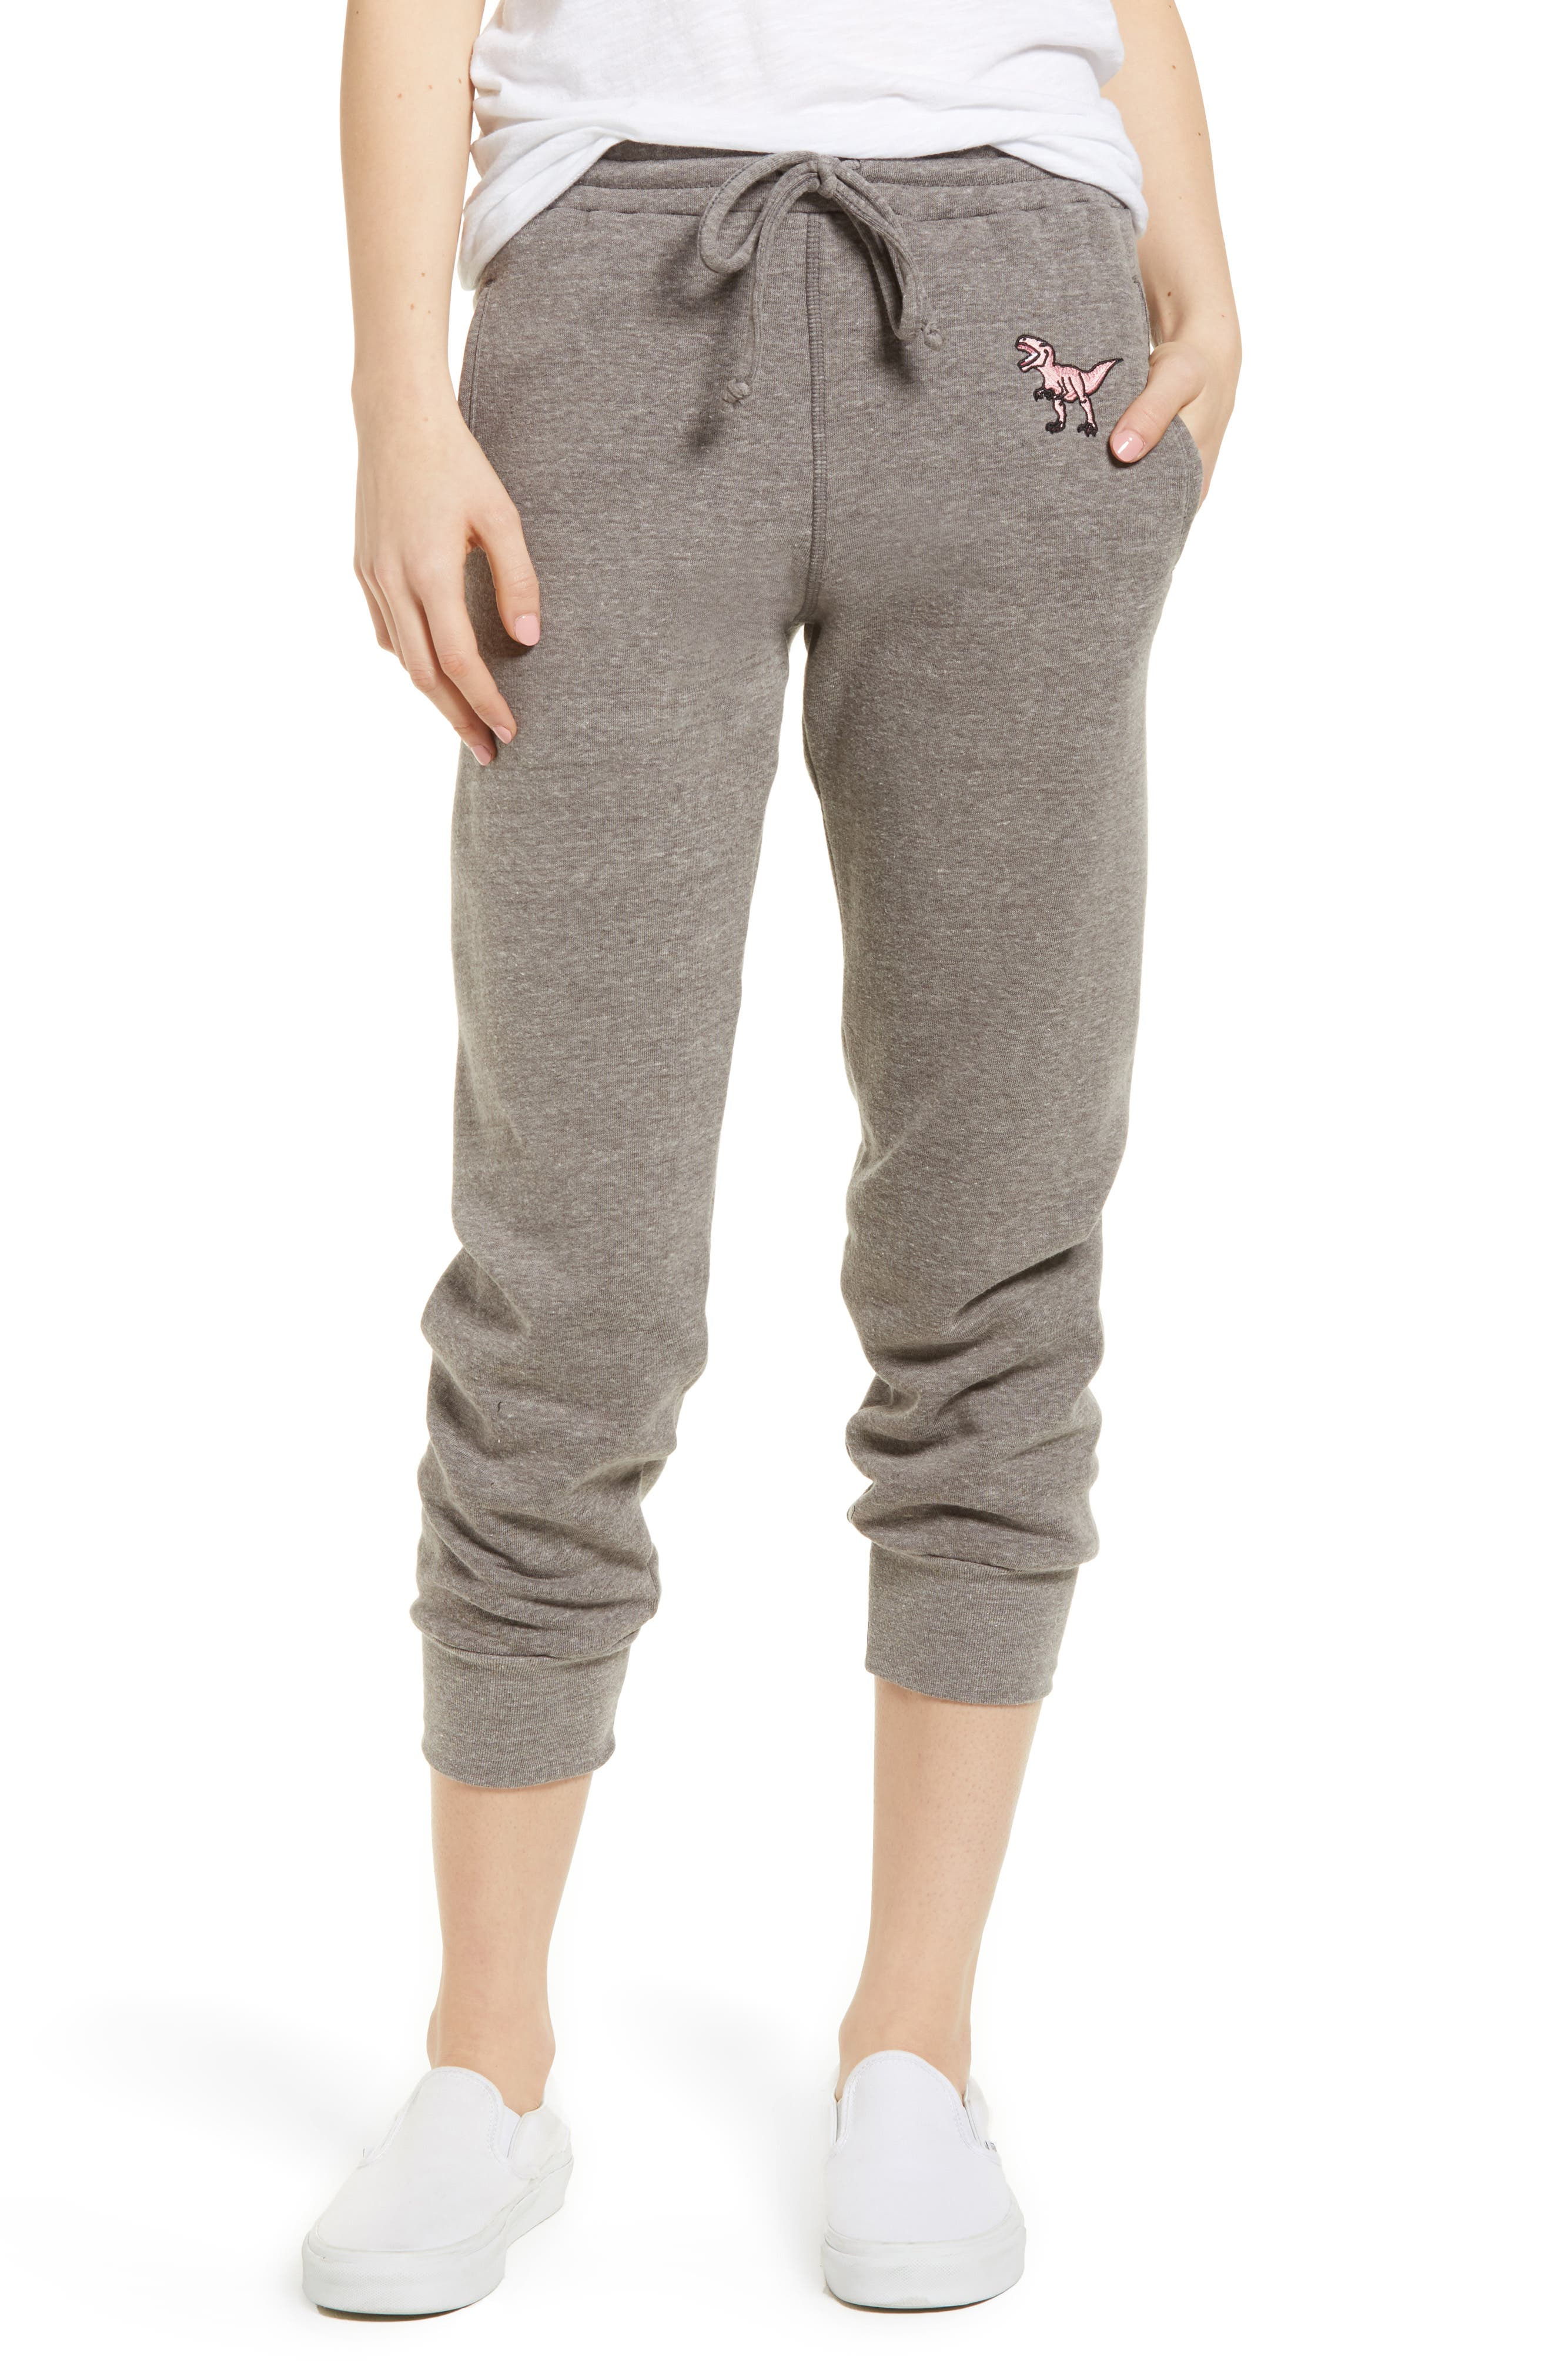 Drakeosaur Cambridge Sweatpants,                         Main,                         color, 050